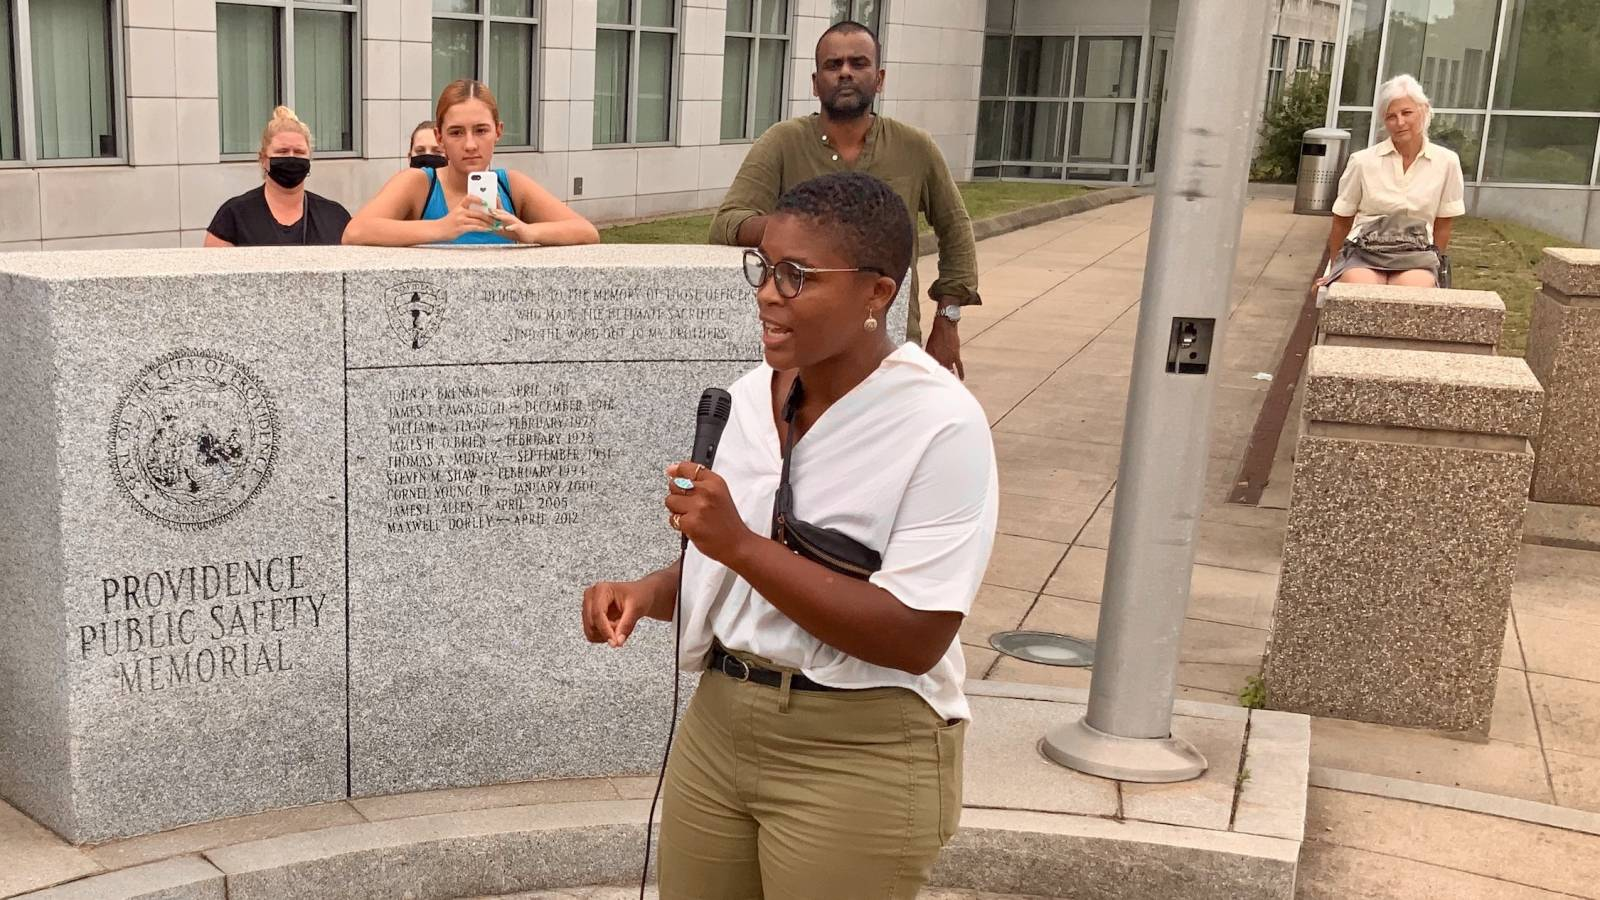 BLM RI PAC rallies against LEOBoR in the wake of police videos showing violent arrests